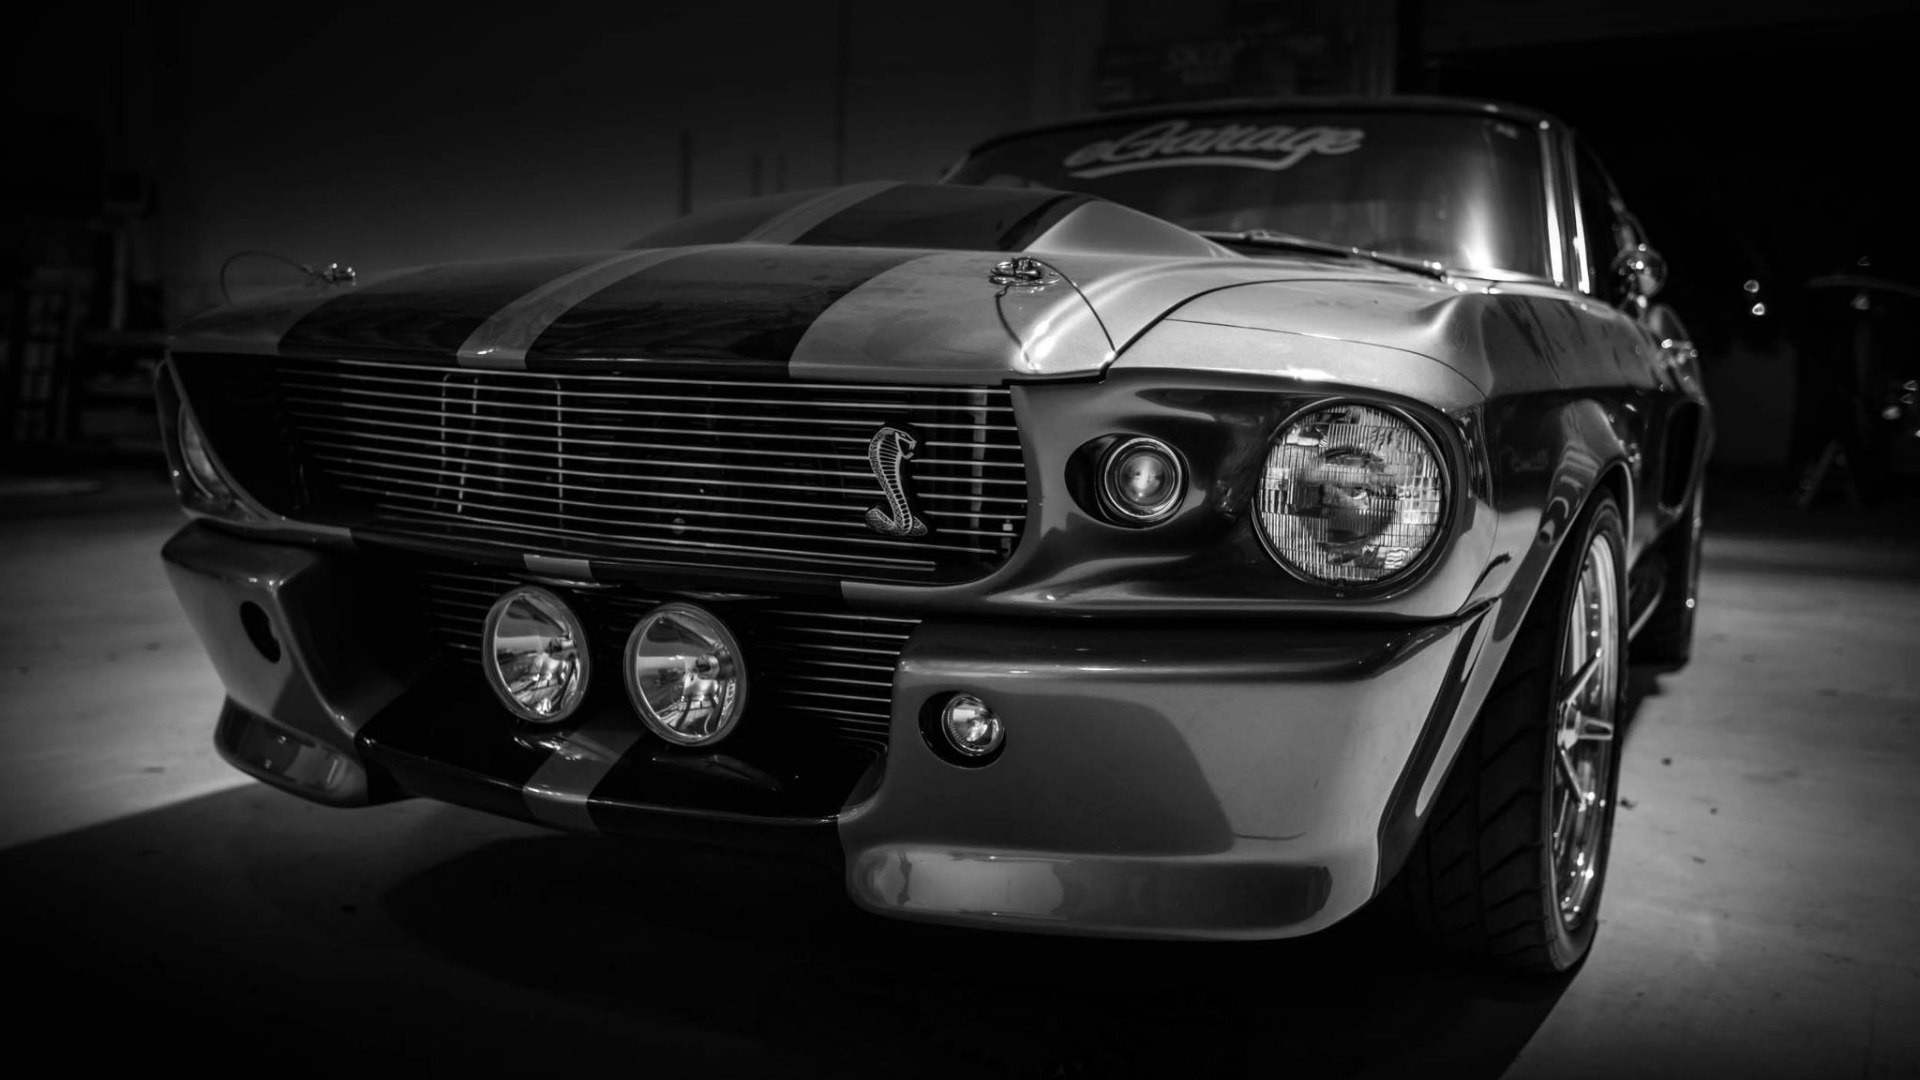 Wallpaper Shelby, Gt500, Eleanor, Ford mustang